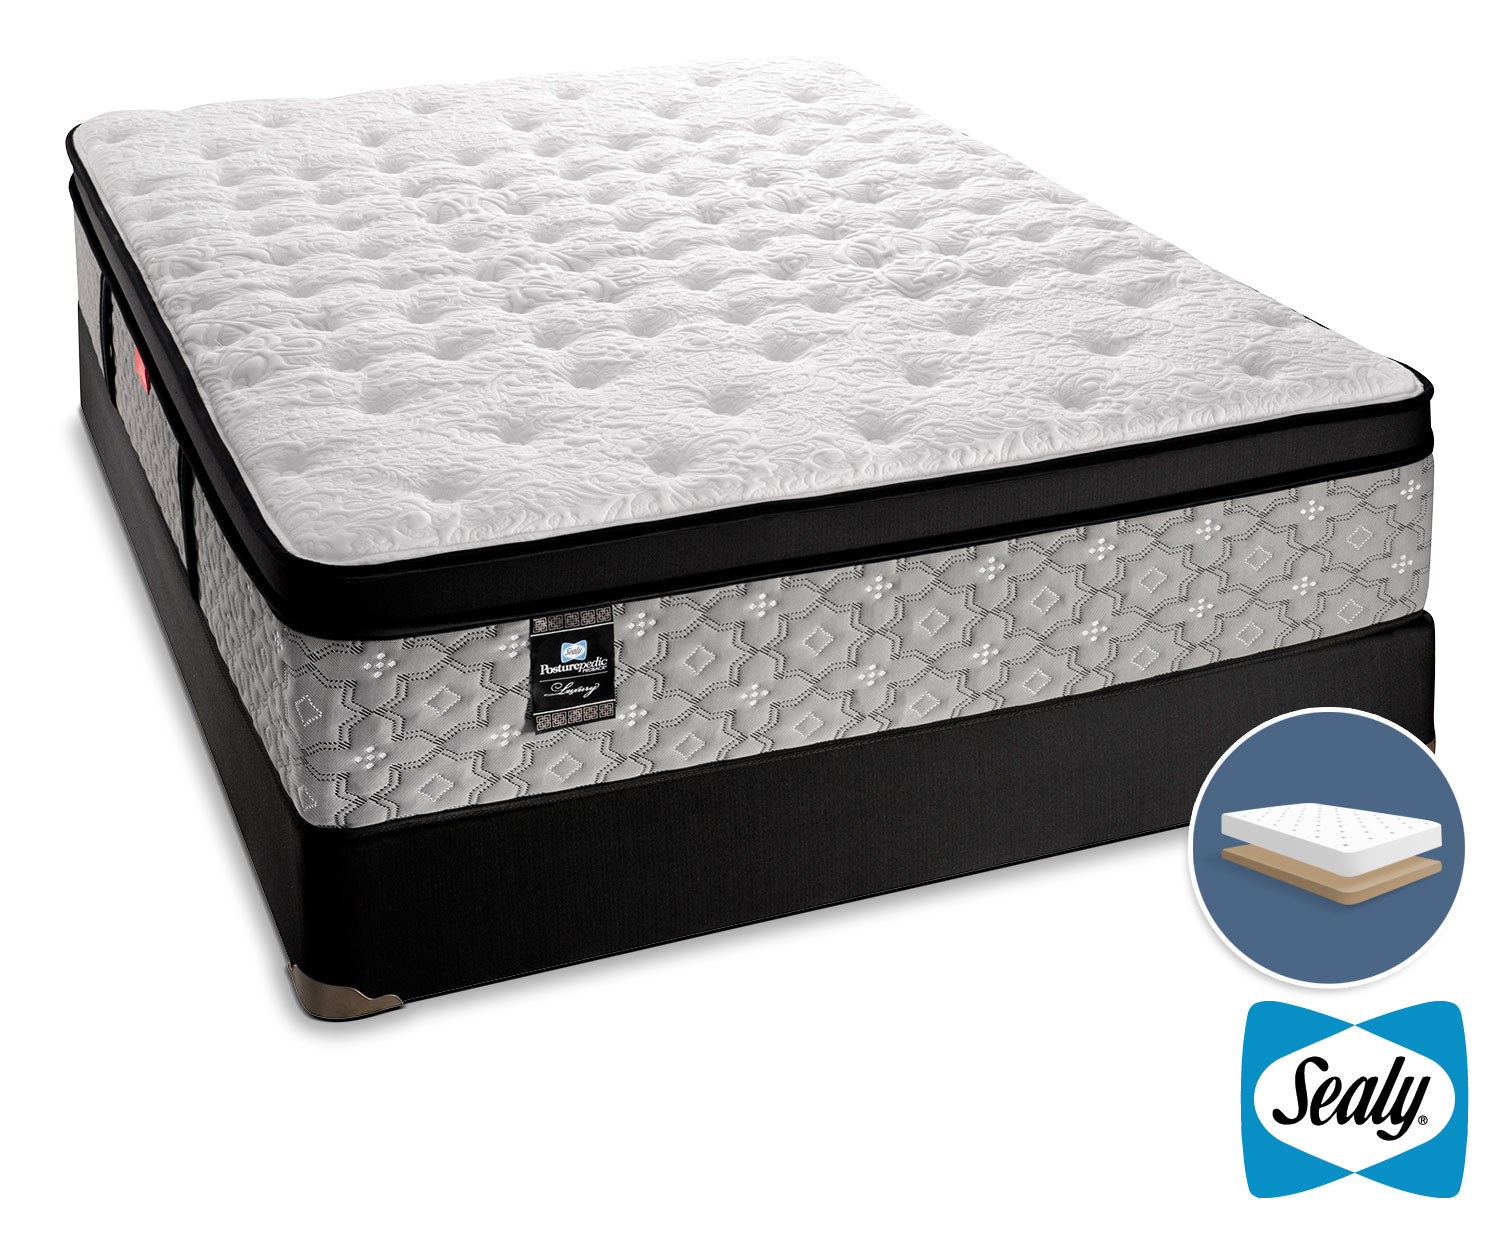 Mattresses and Bedding - Sealy Hemmingway Cushion Firm Full Mattress and Low-Profile Boxspring Set